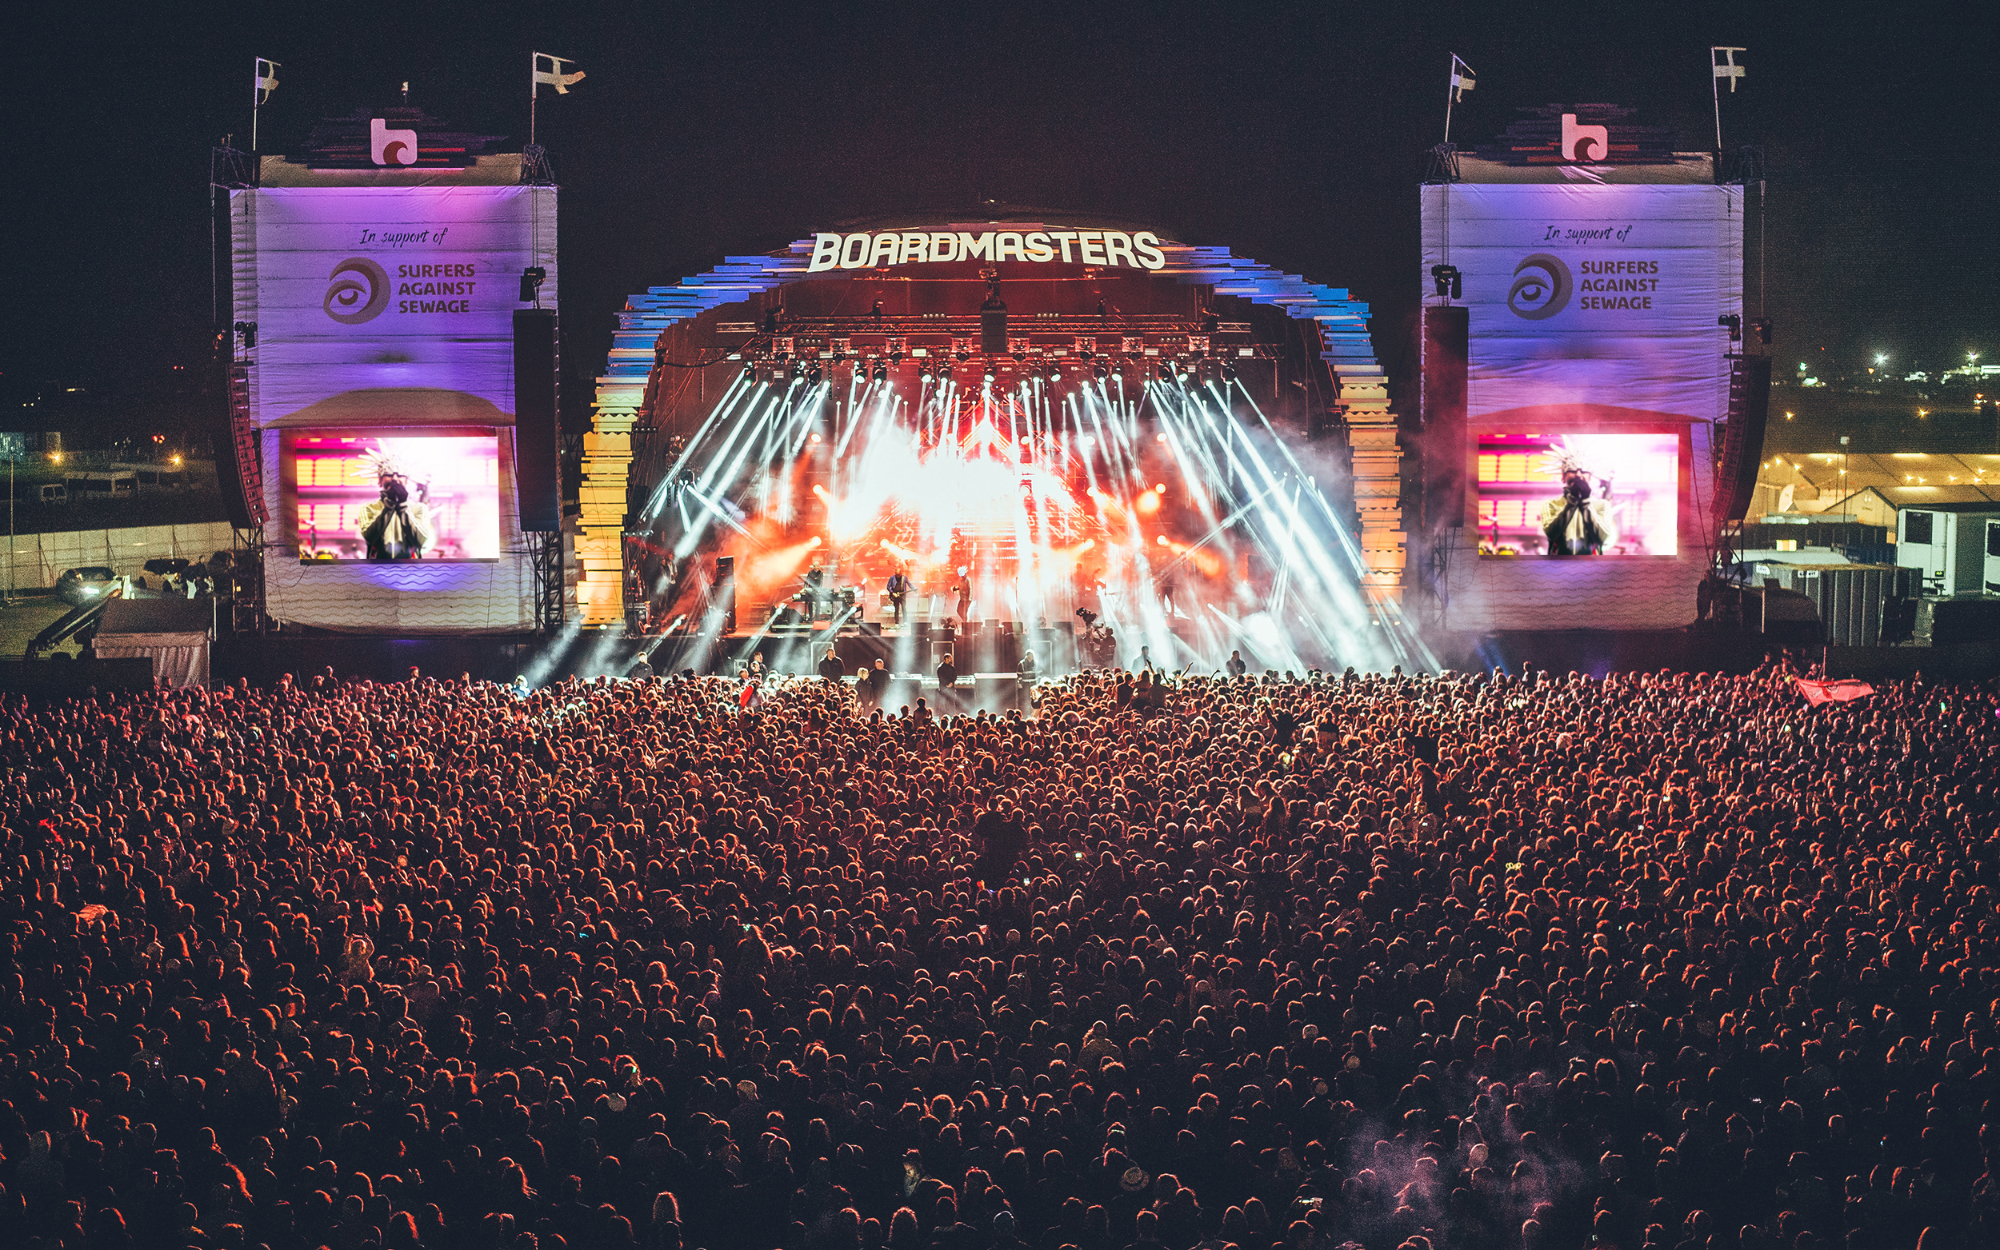 Boardmasters Festival Cancelled Last Minute After Severe Weather Warnings | Music News - Conversations About Her